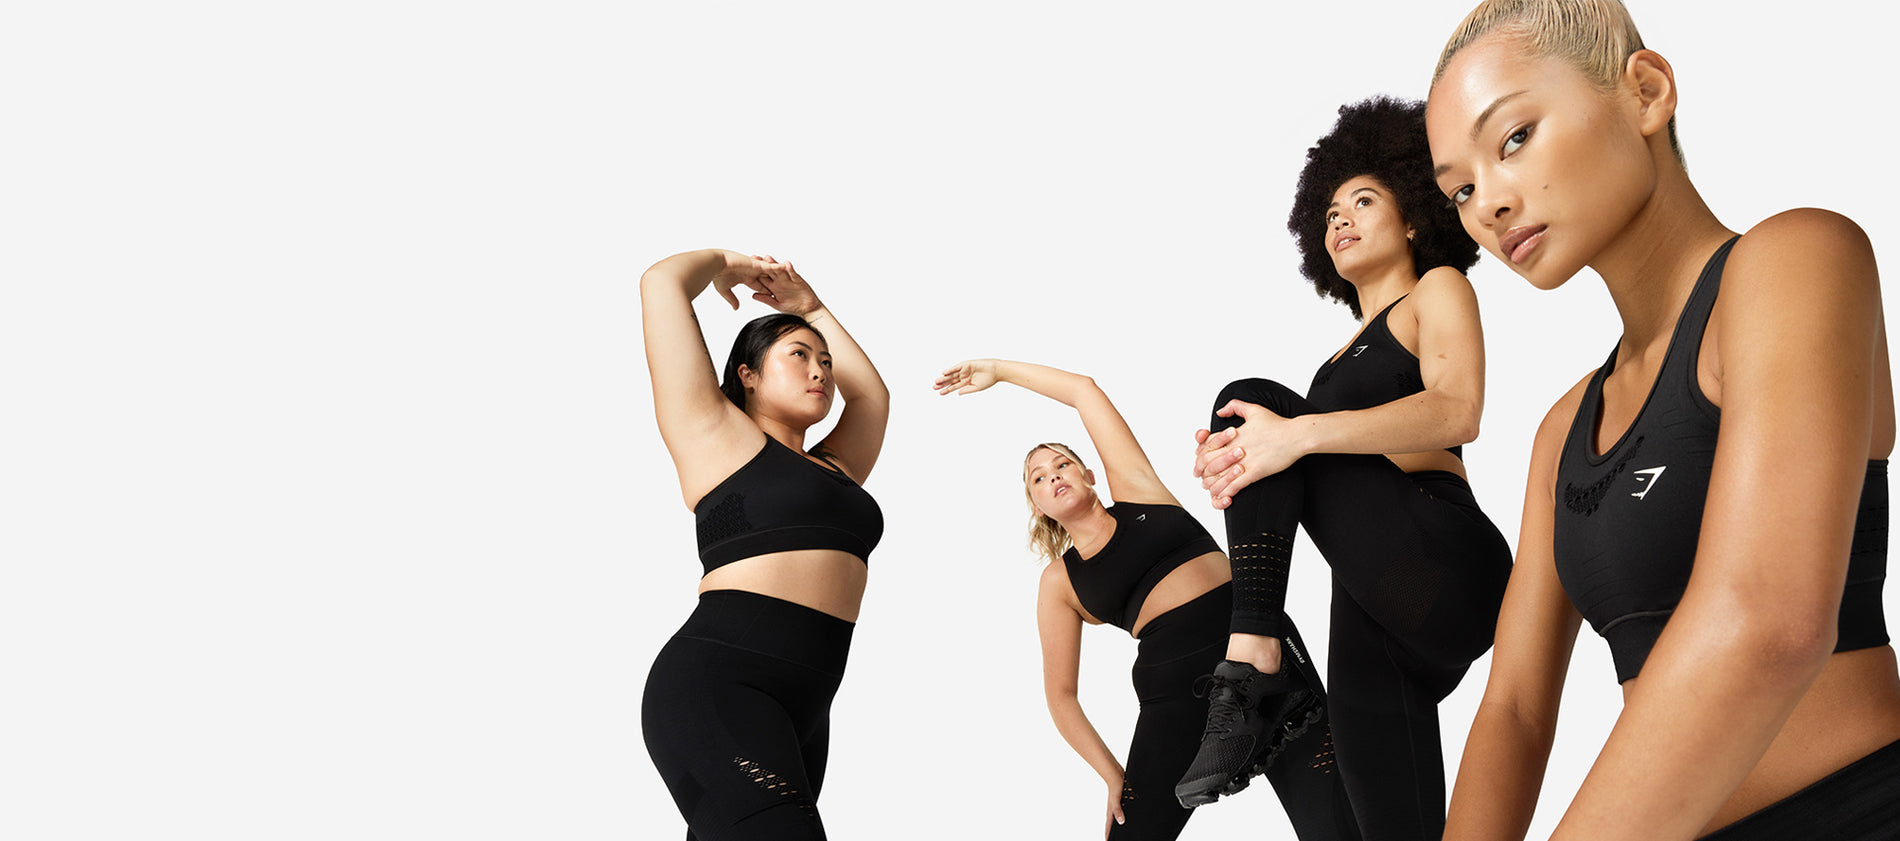 Models wearing the must-have Energy Seamless collection in black.